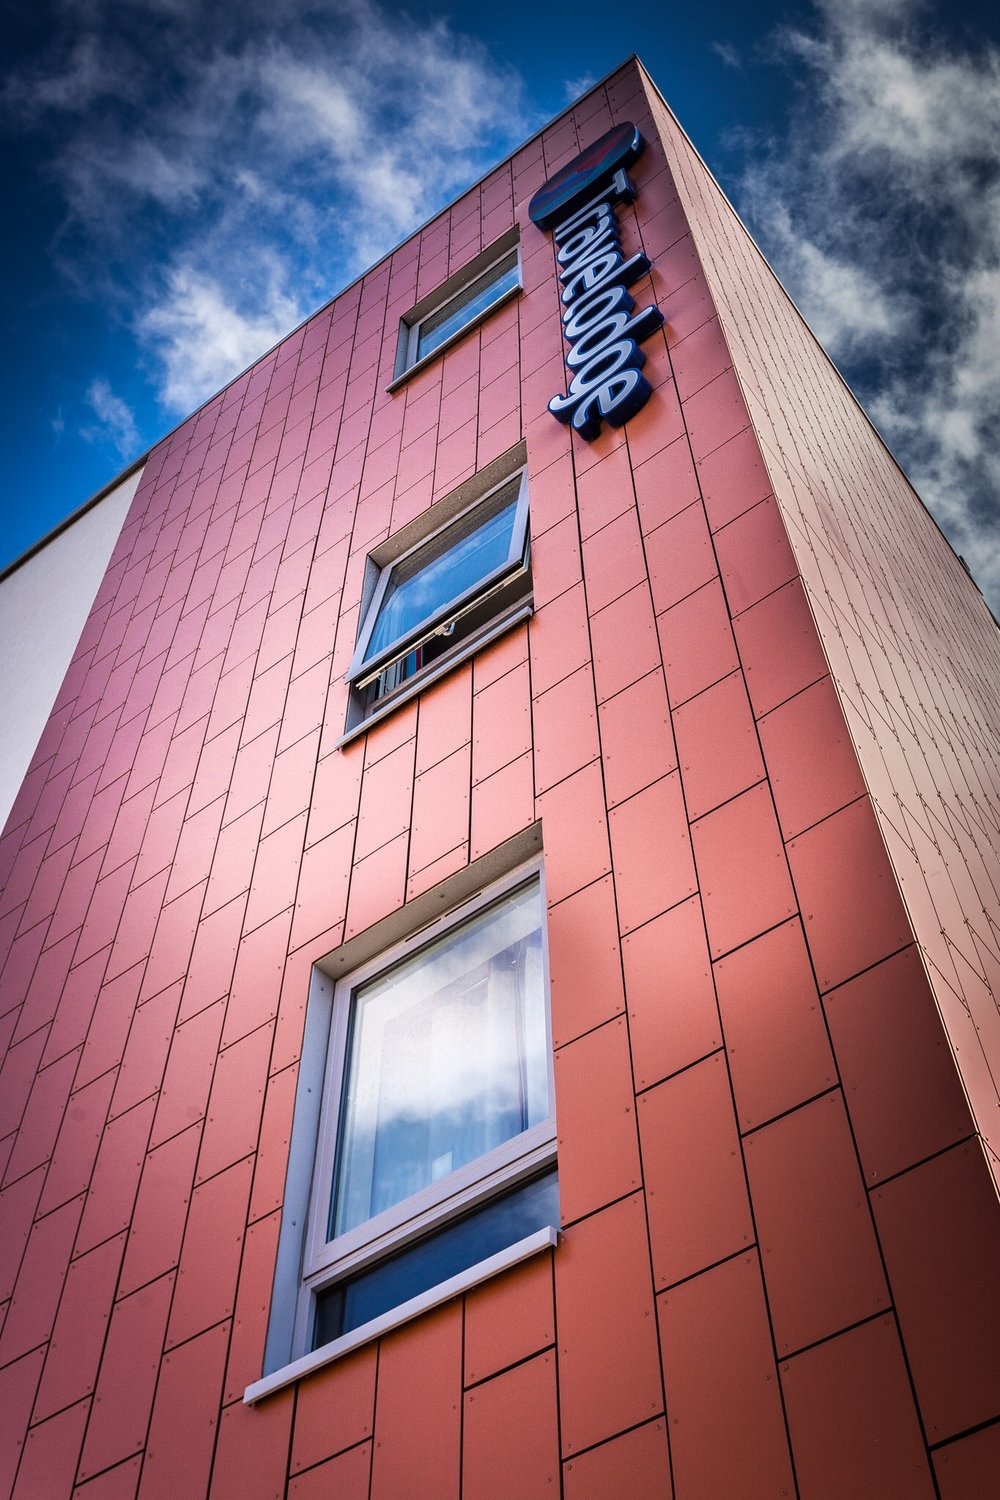 Southampton Central Travelodge, Southampton, Hampshire. Commercial architectural photography.